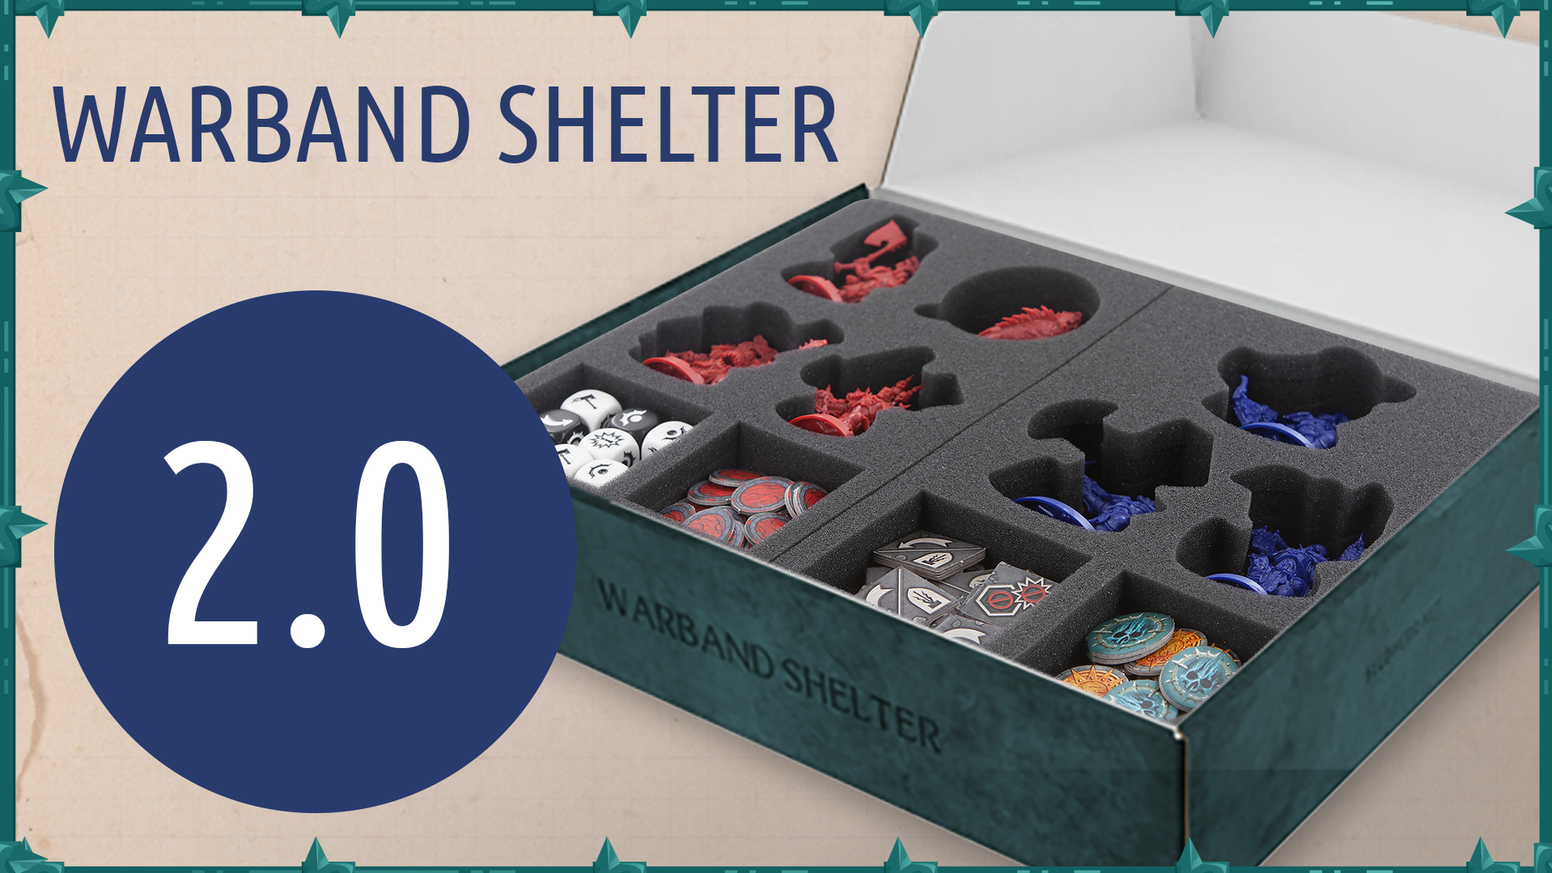 Protect, store, and casually transport tabletop miniatures. We created an easy way to bring your Shadespire miniatures to safety.